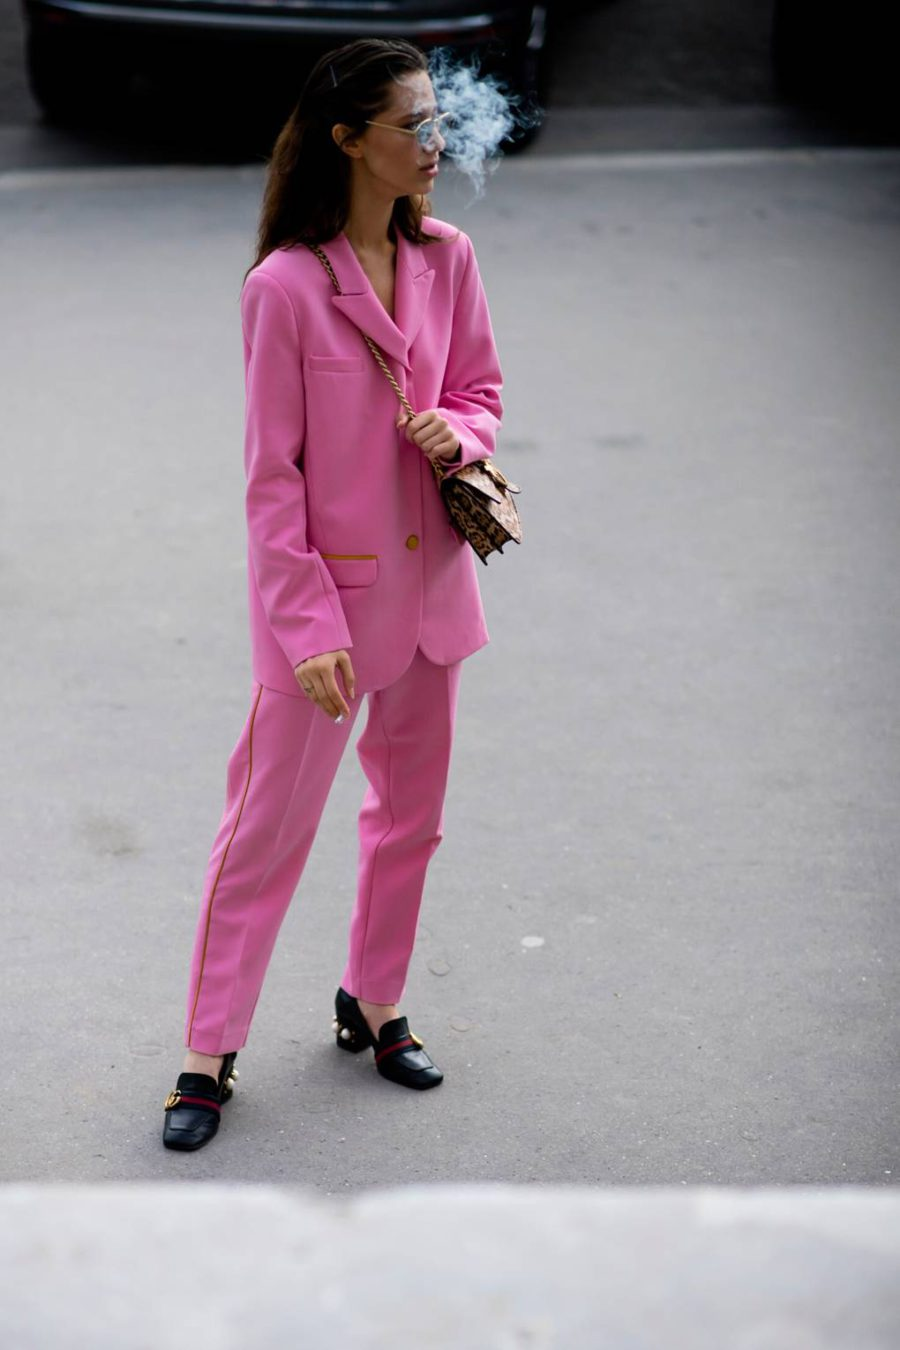 Colored Pantsuits For Women: New Fashion Trend 2019